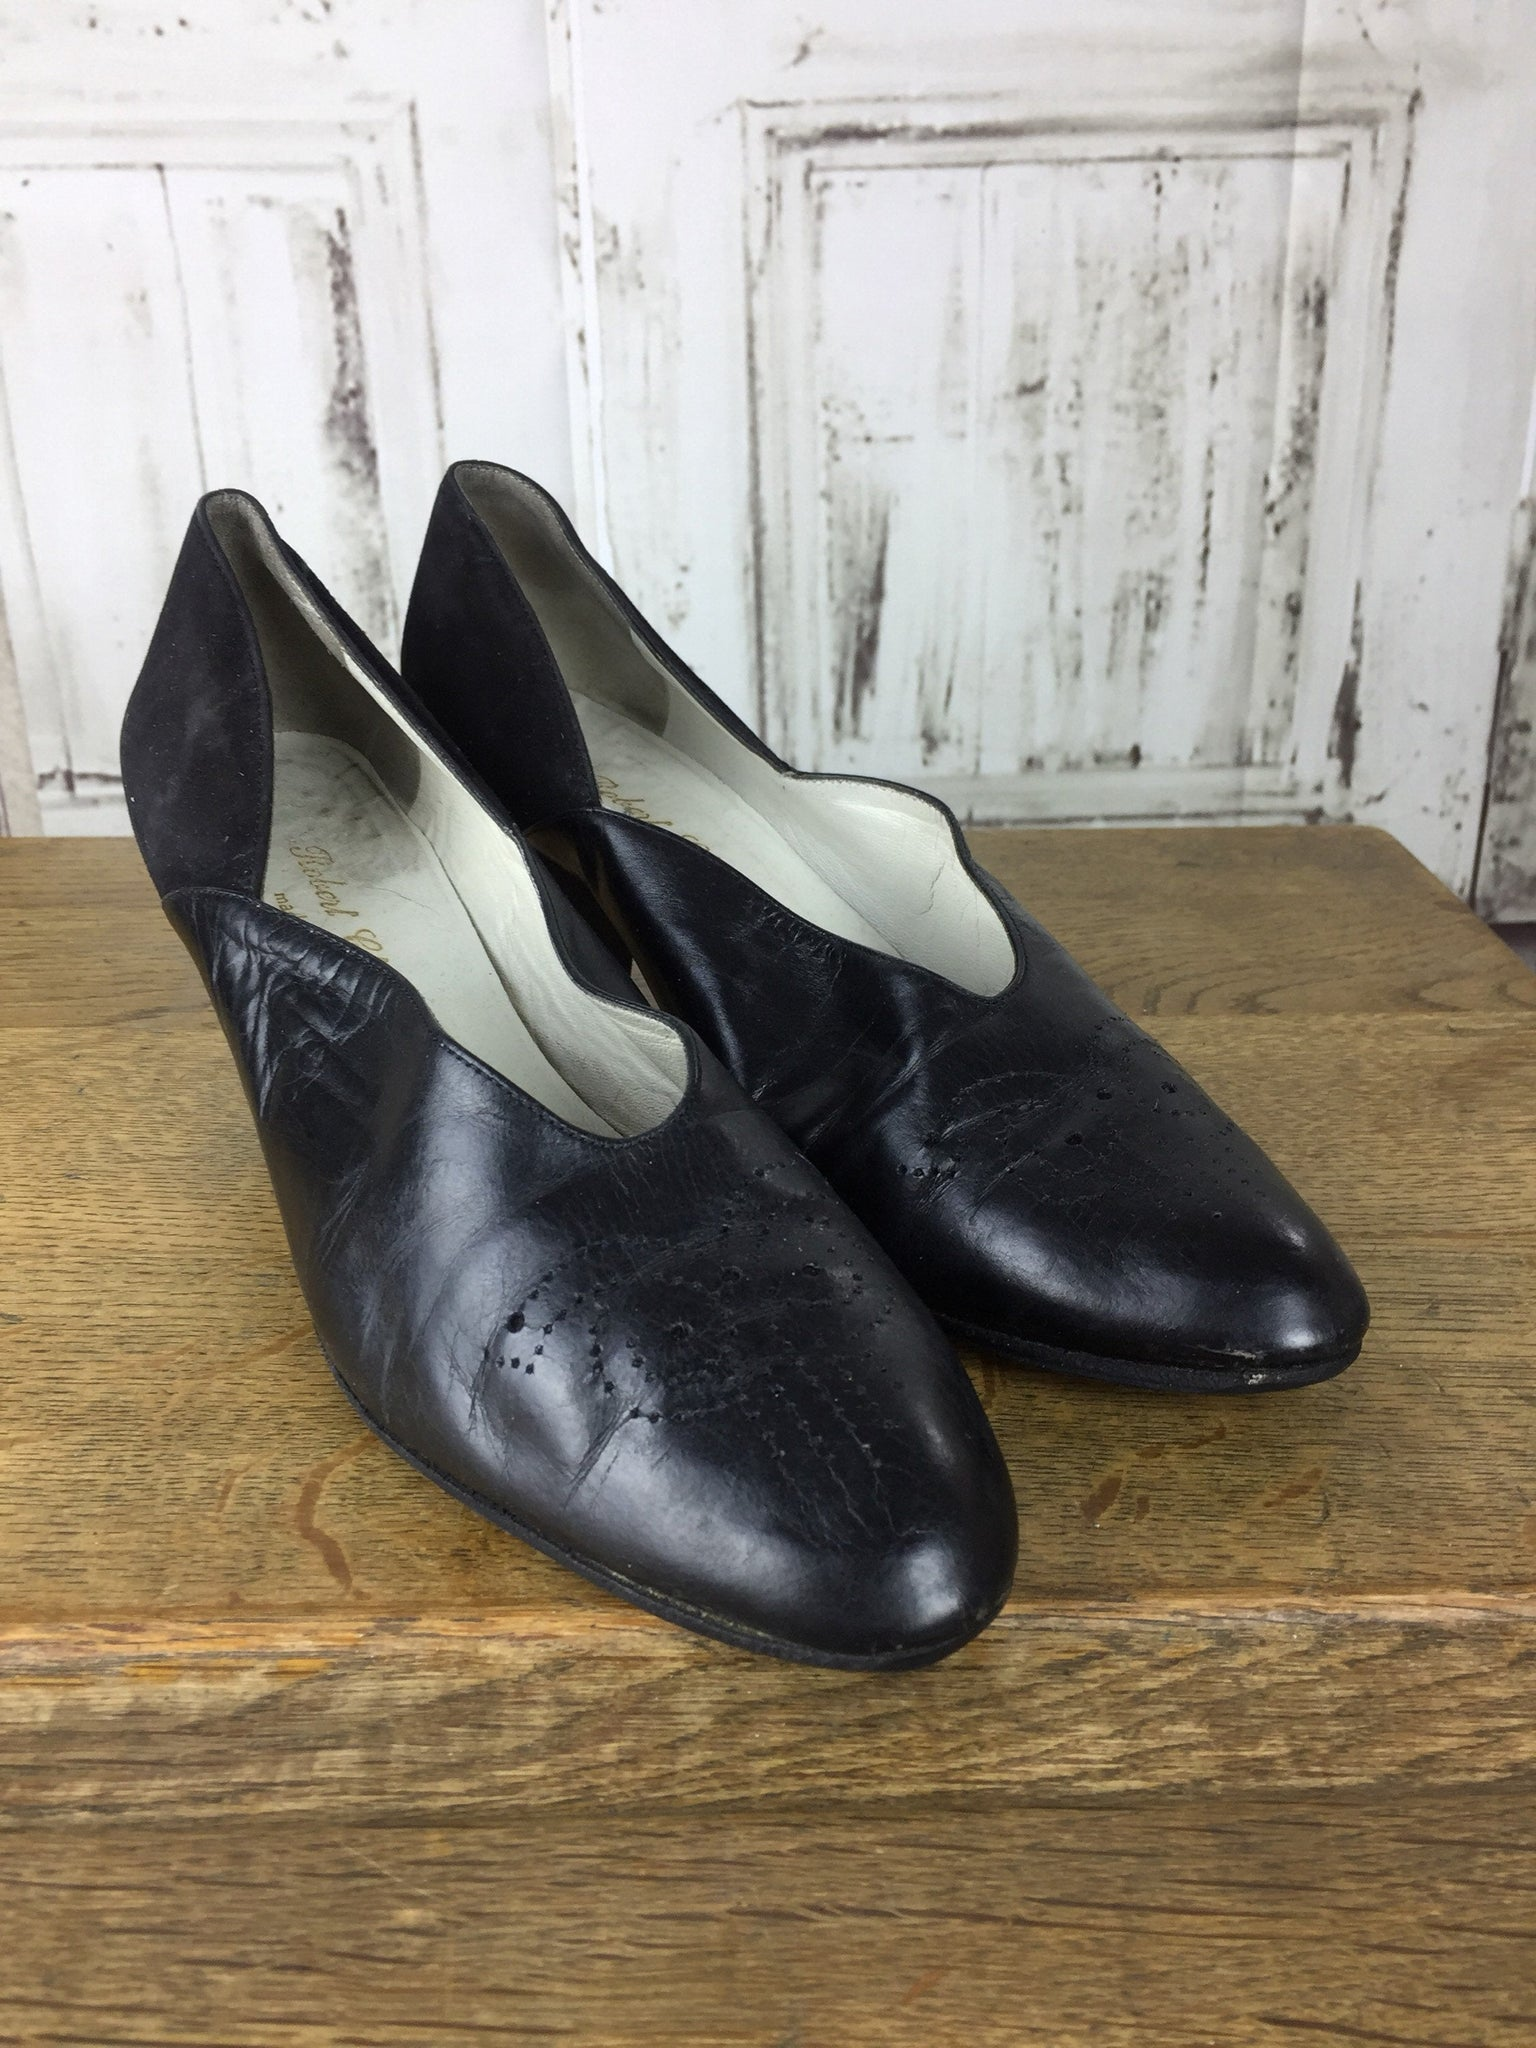 Original 1970s does 1940s Vintage Black Leather And Suede Heels With Pierced Decoration By Robert Clergerie